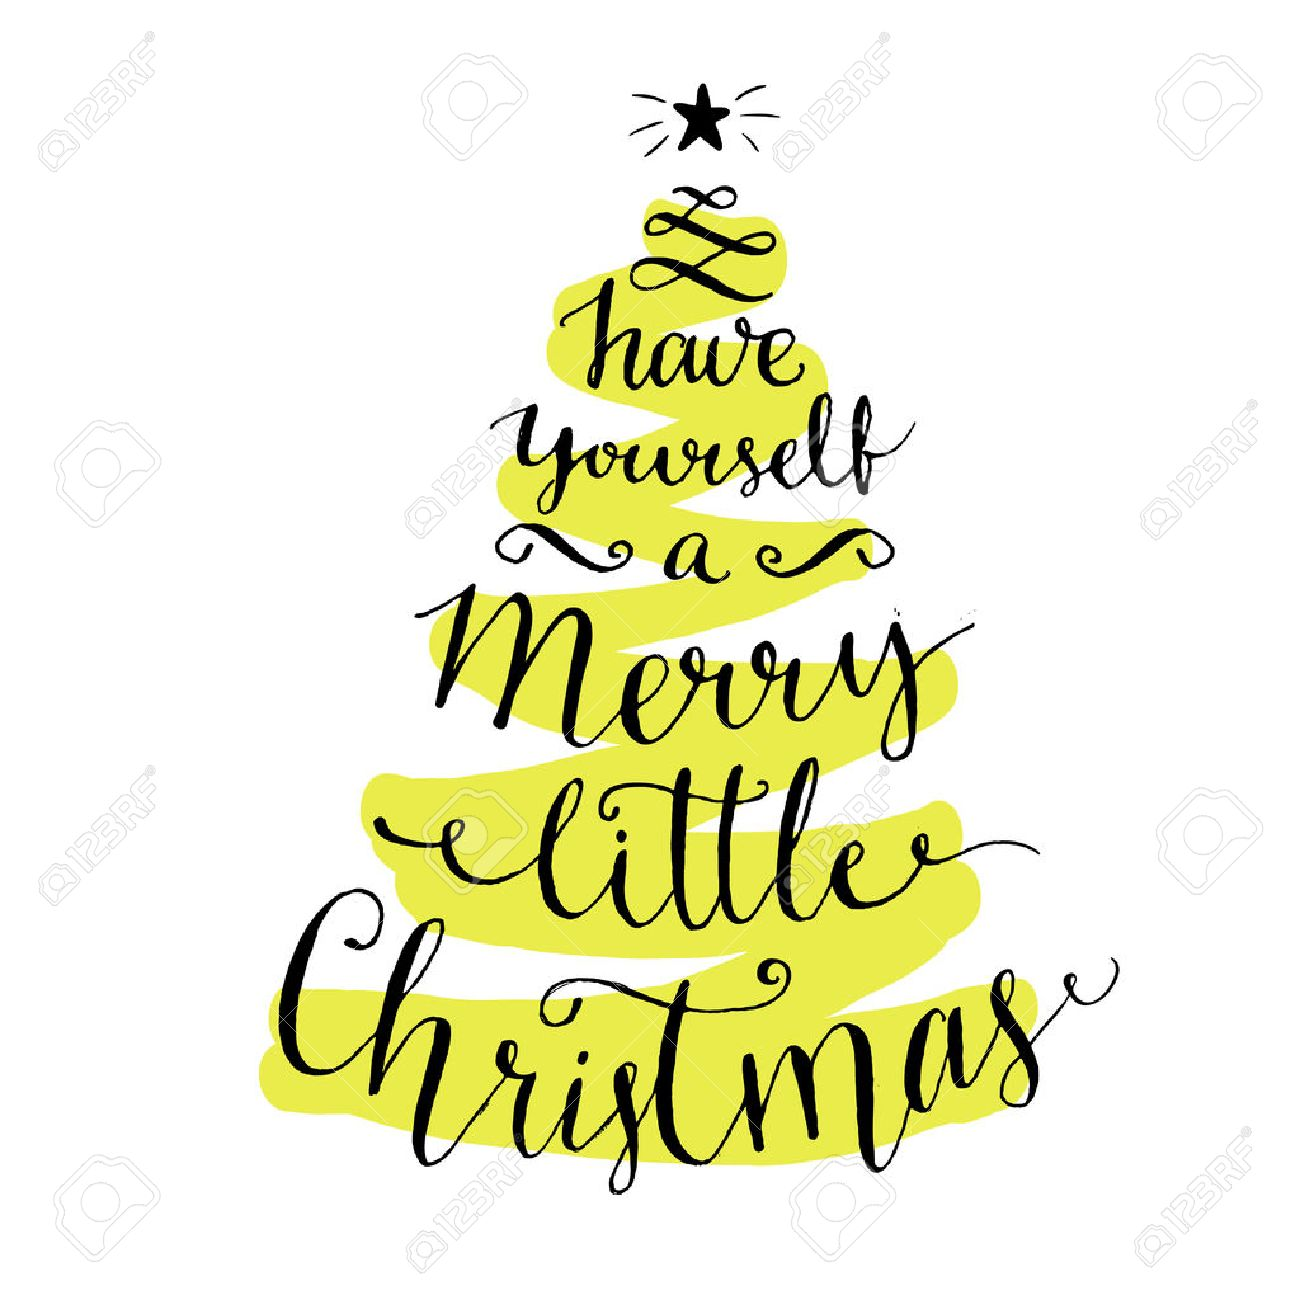 have yourself a merry little christmas modern calligraphy for winter holidays cards and posters